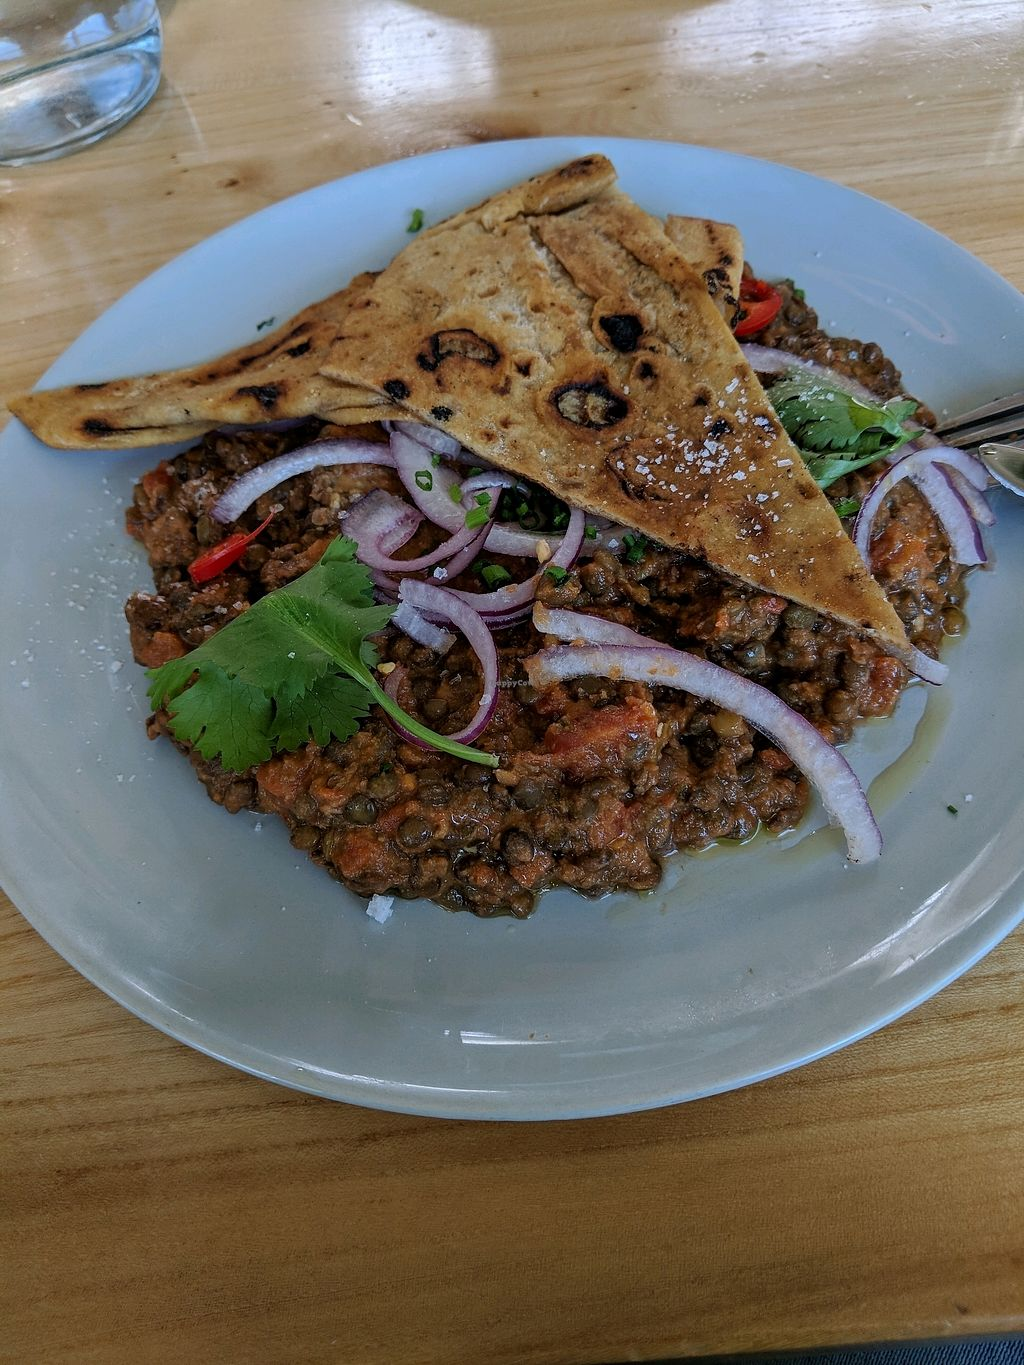 """Photo of Bestie Cafe  by <a href=""""/members/profile/Shiru"""">Shiru</a> <br/>lentil breakfast dish <br/> December 7, 2017  - <a href='/contact/abuse/image/106511/333168'>Report</a>"""